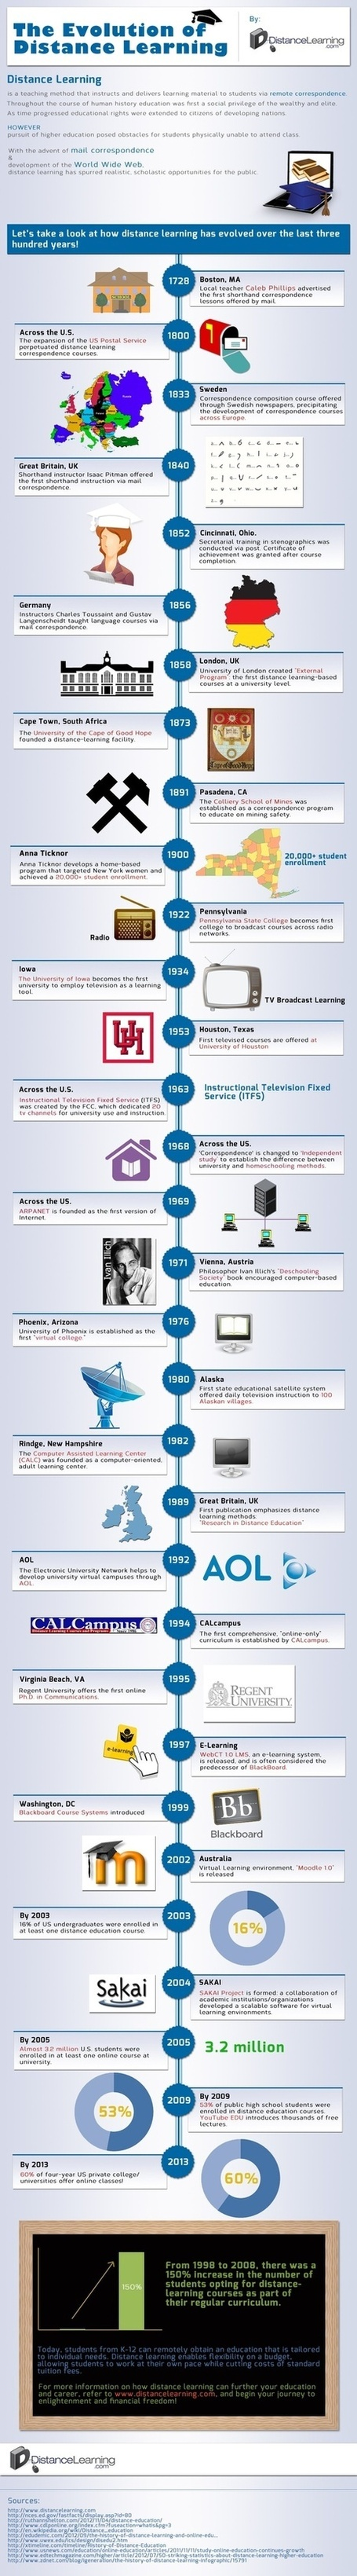 300 Years of Distance Learning Evolution [INFOGRAPHIC] | Neli Maria Mengalli' Scoop.it! Space | Scoop.it